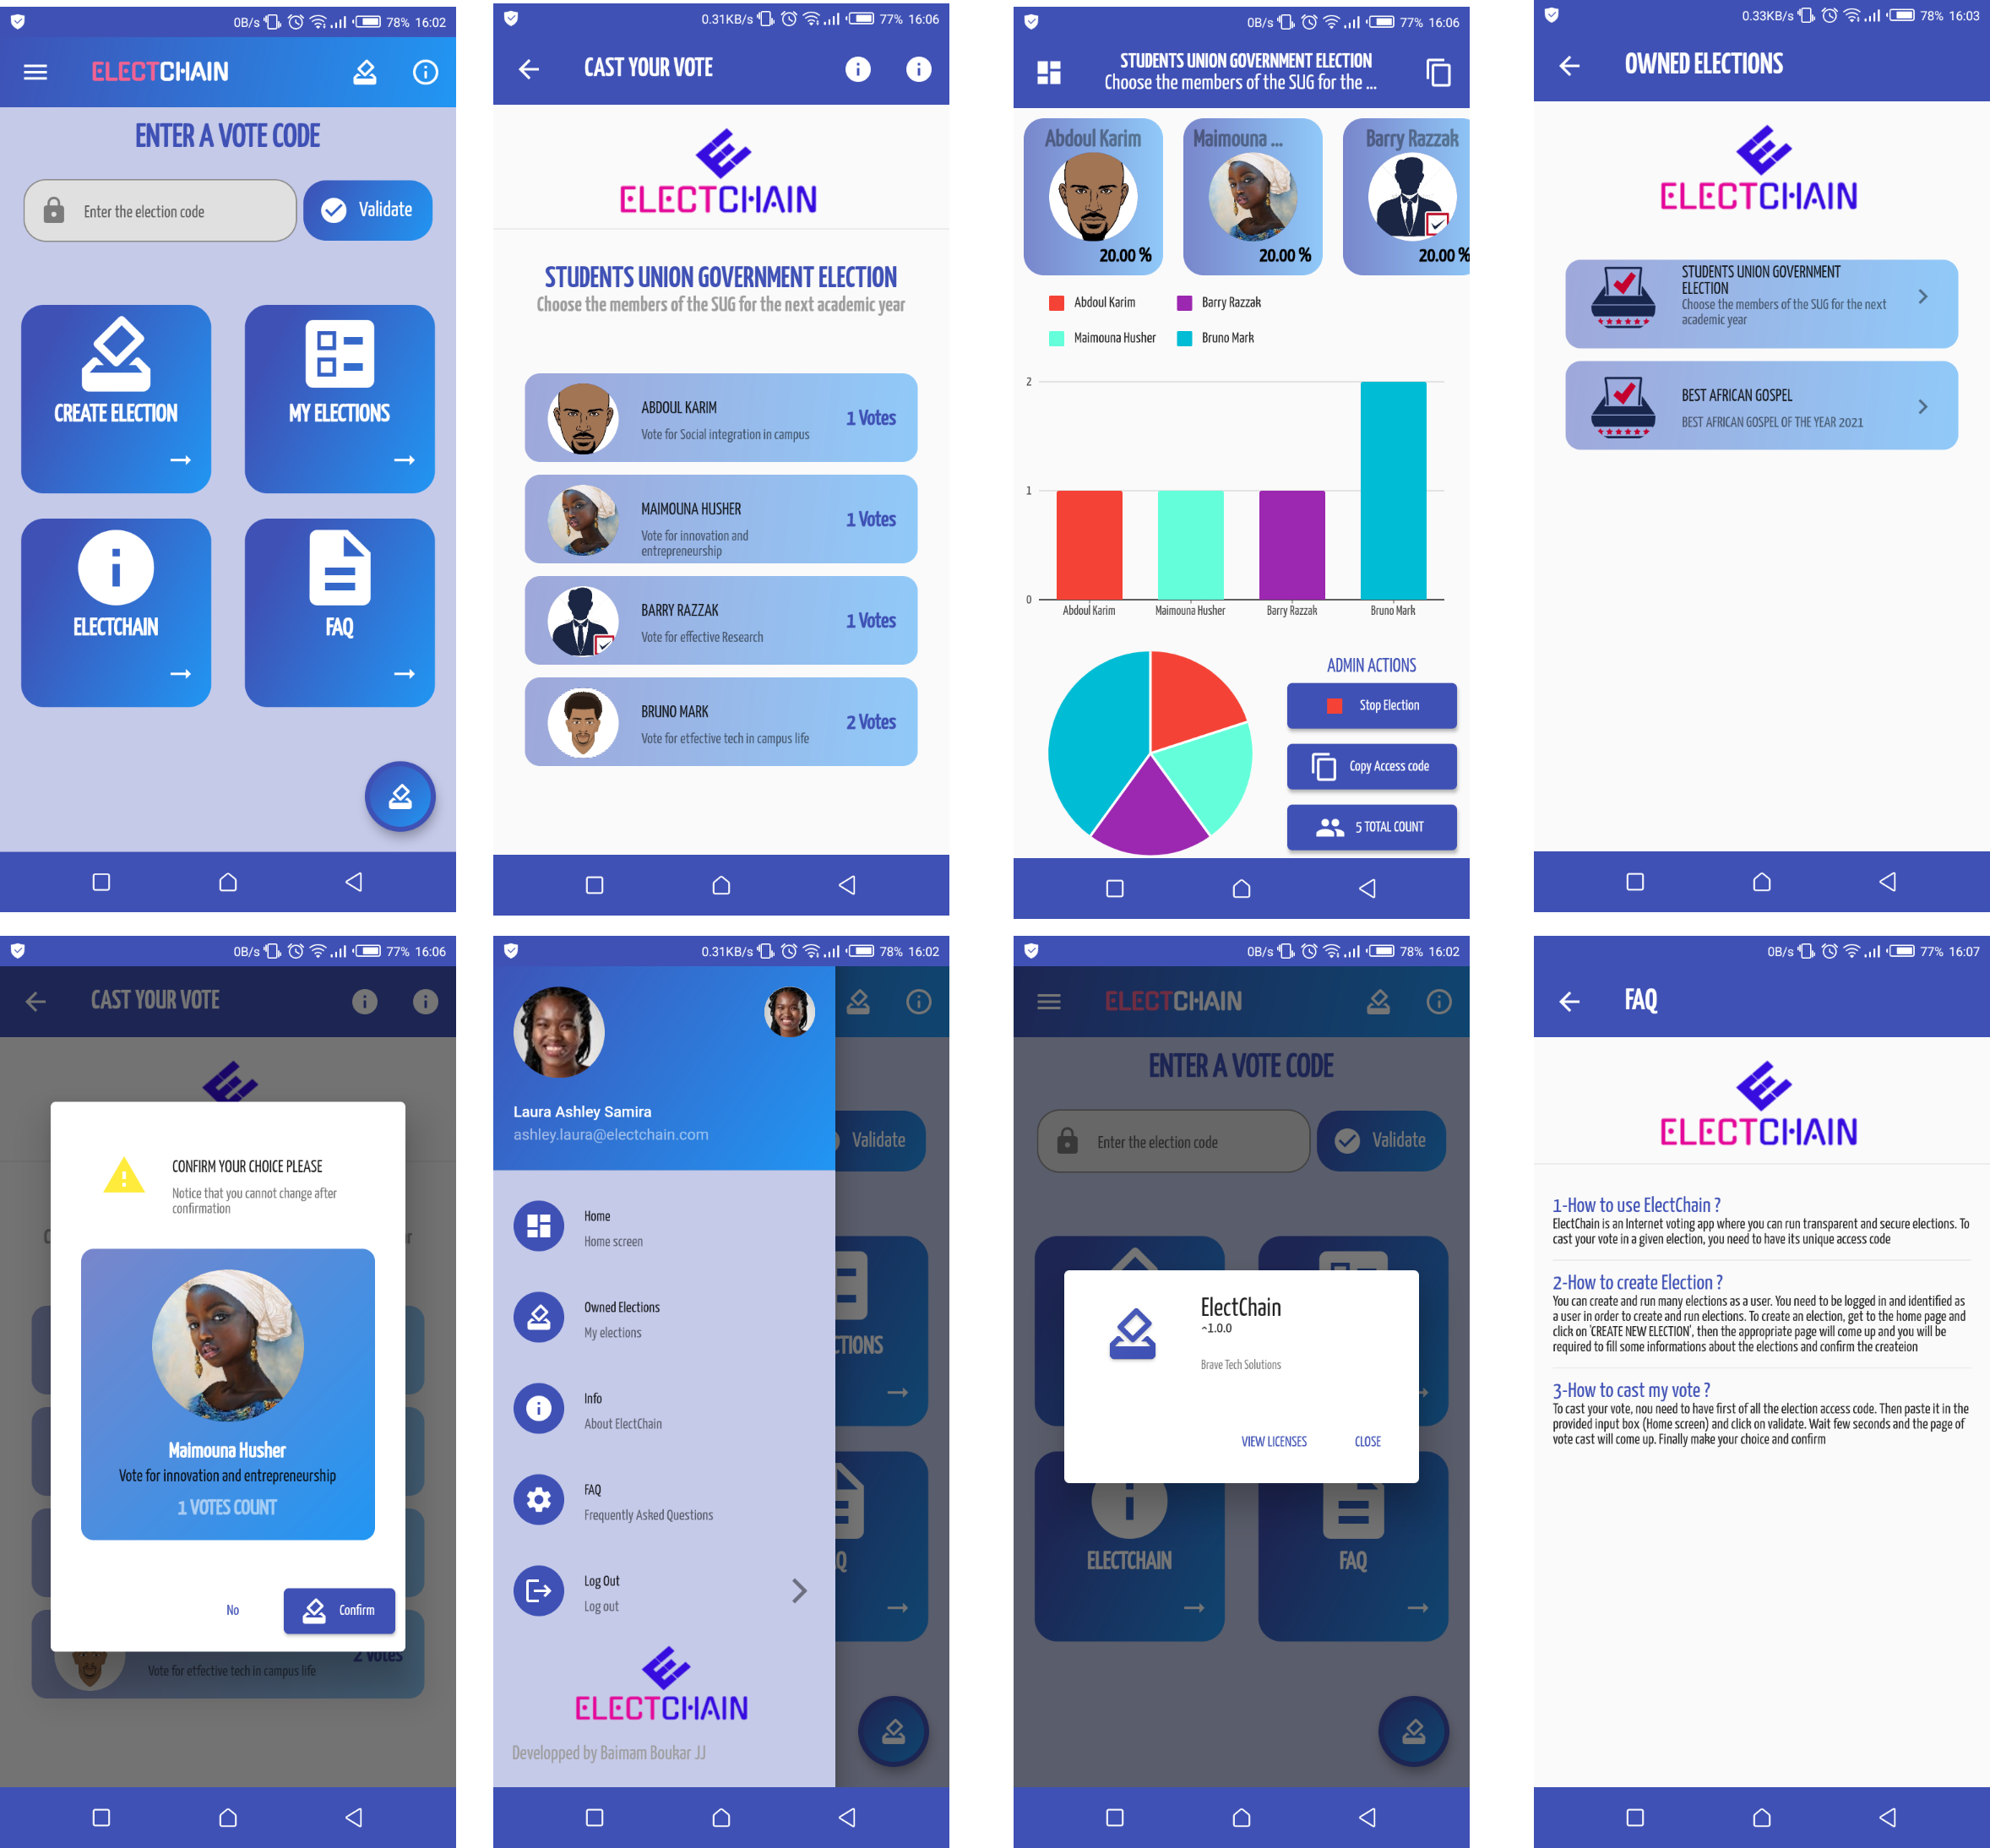 A voting system app made with flutter and firebase